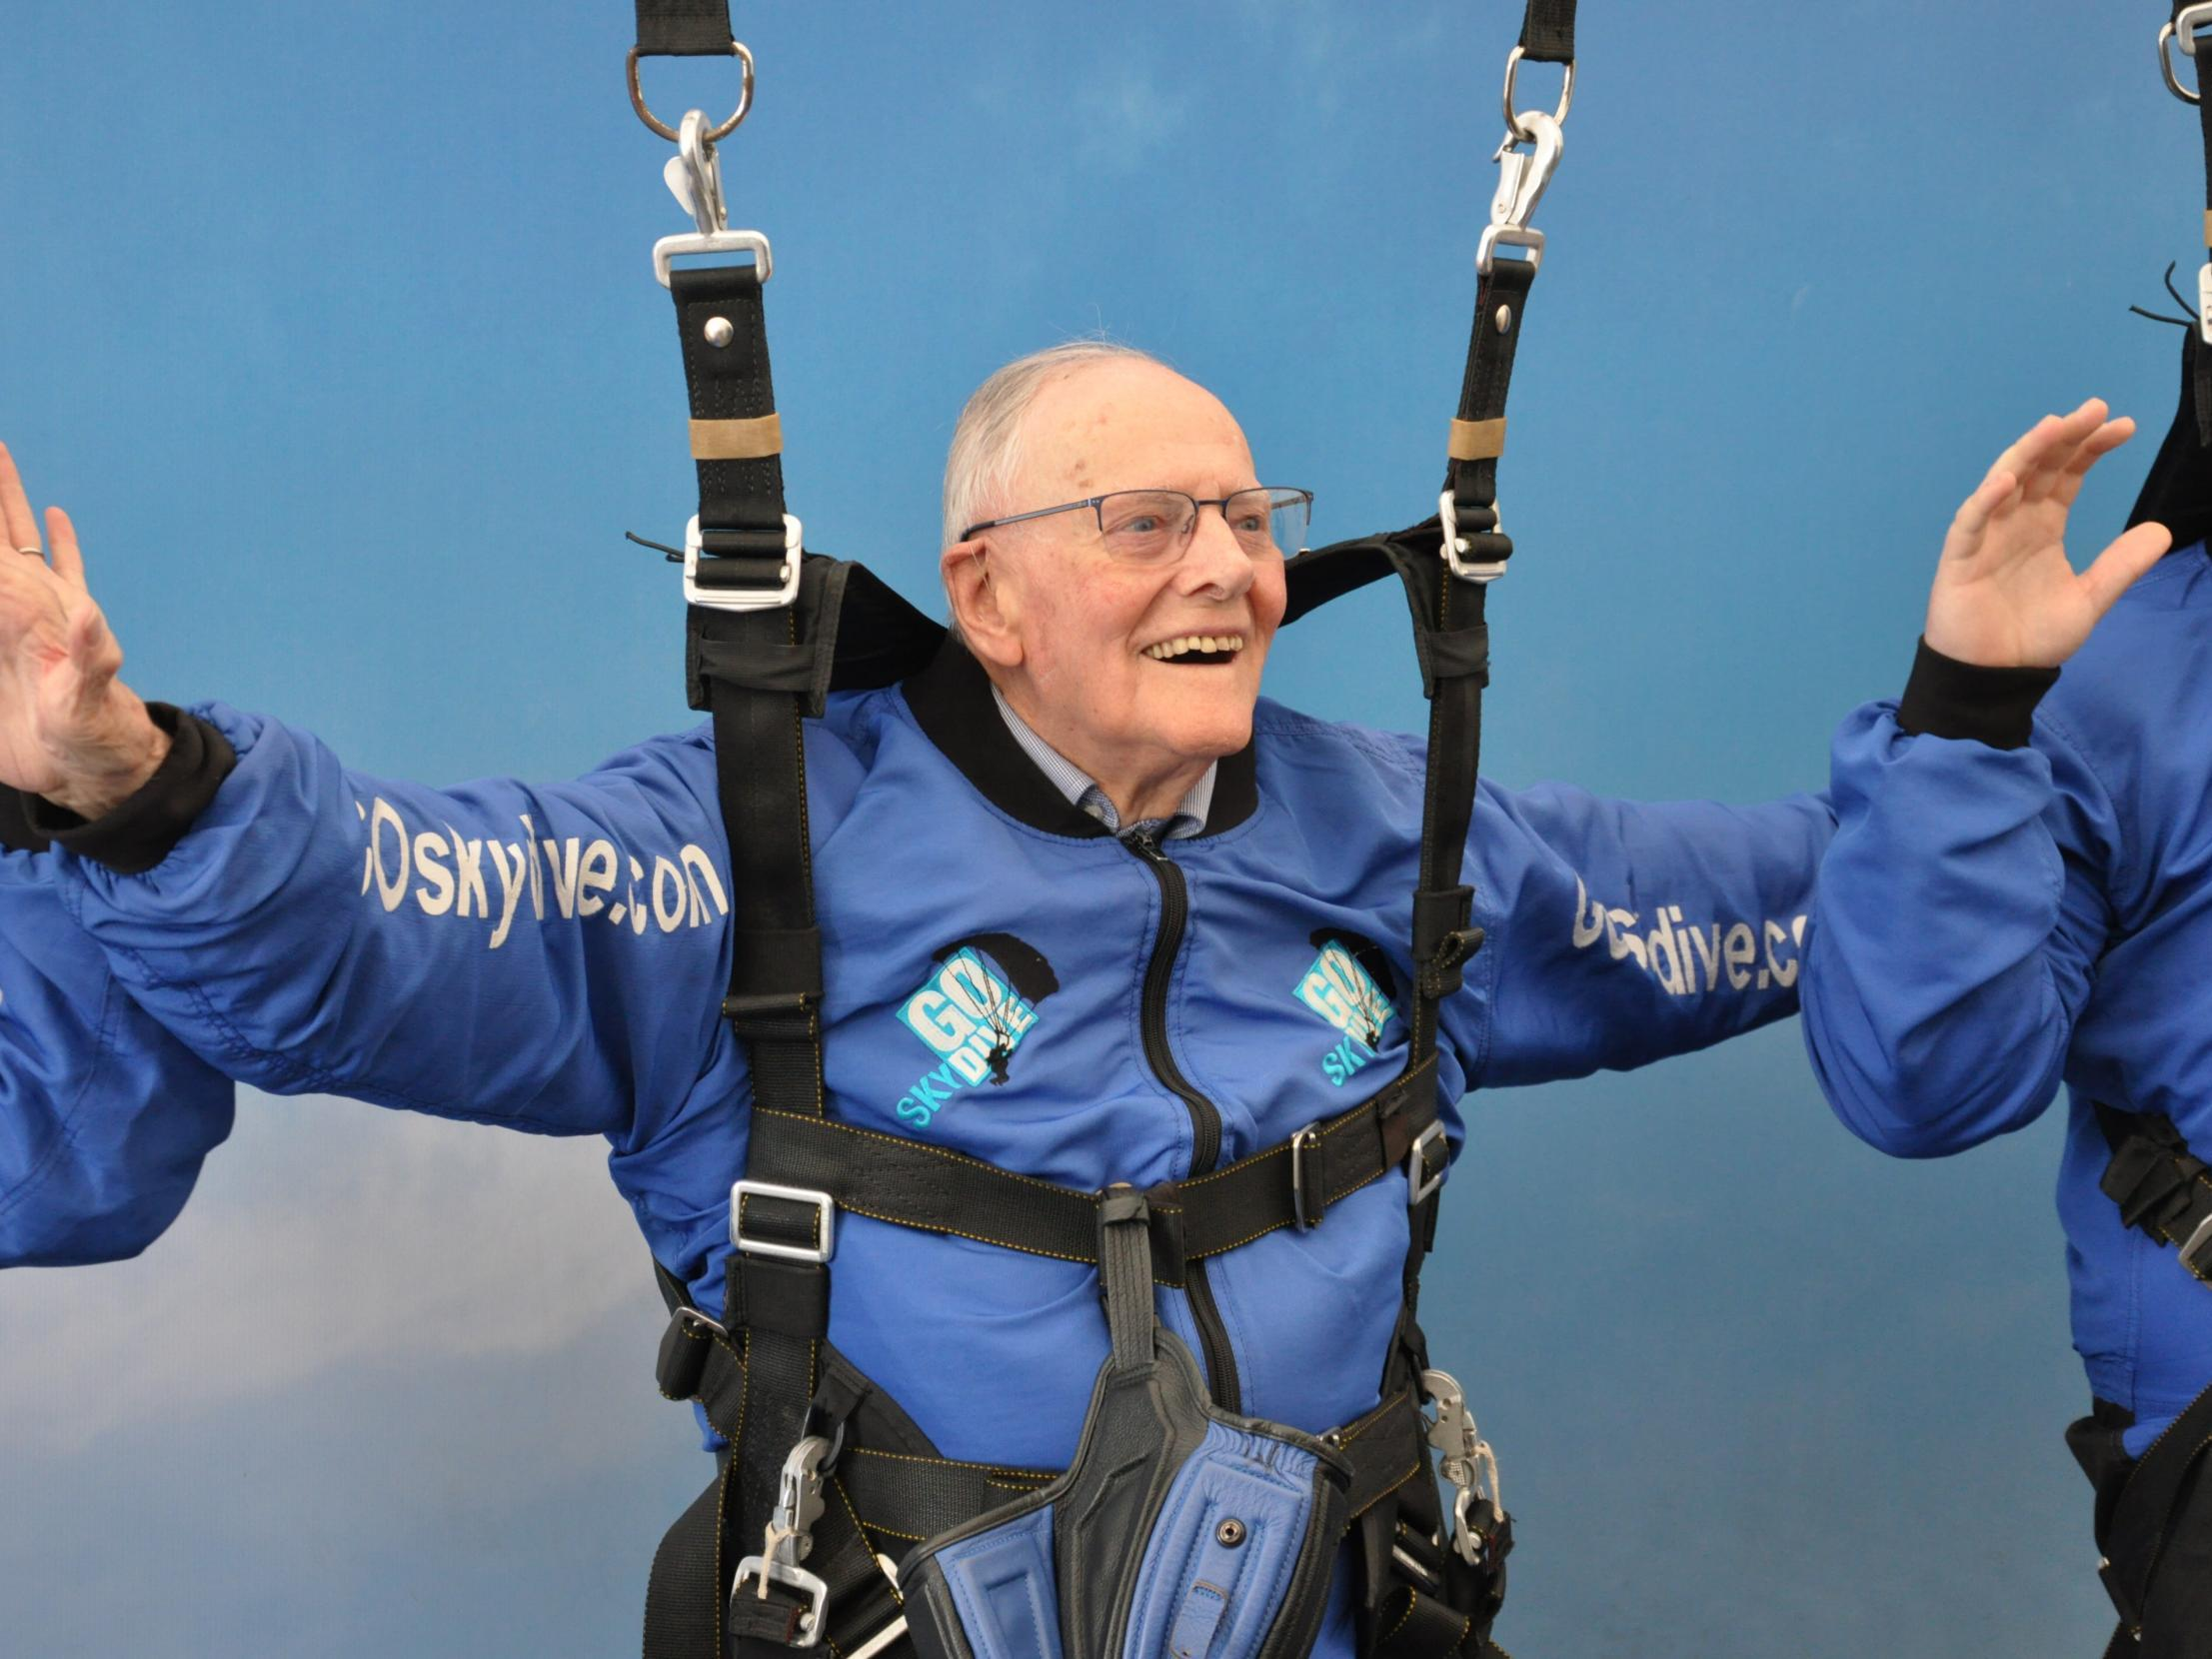 94-year-old D-day veteran to parachute into Normandy to mark 75th anniversary